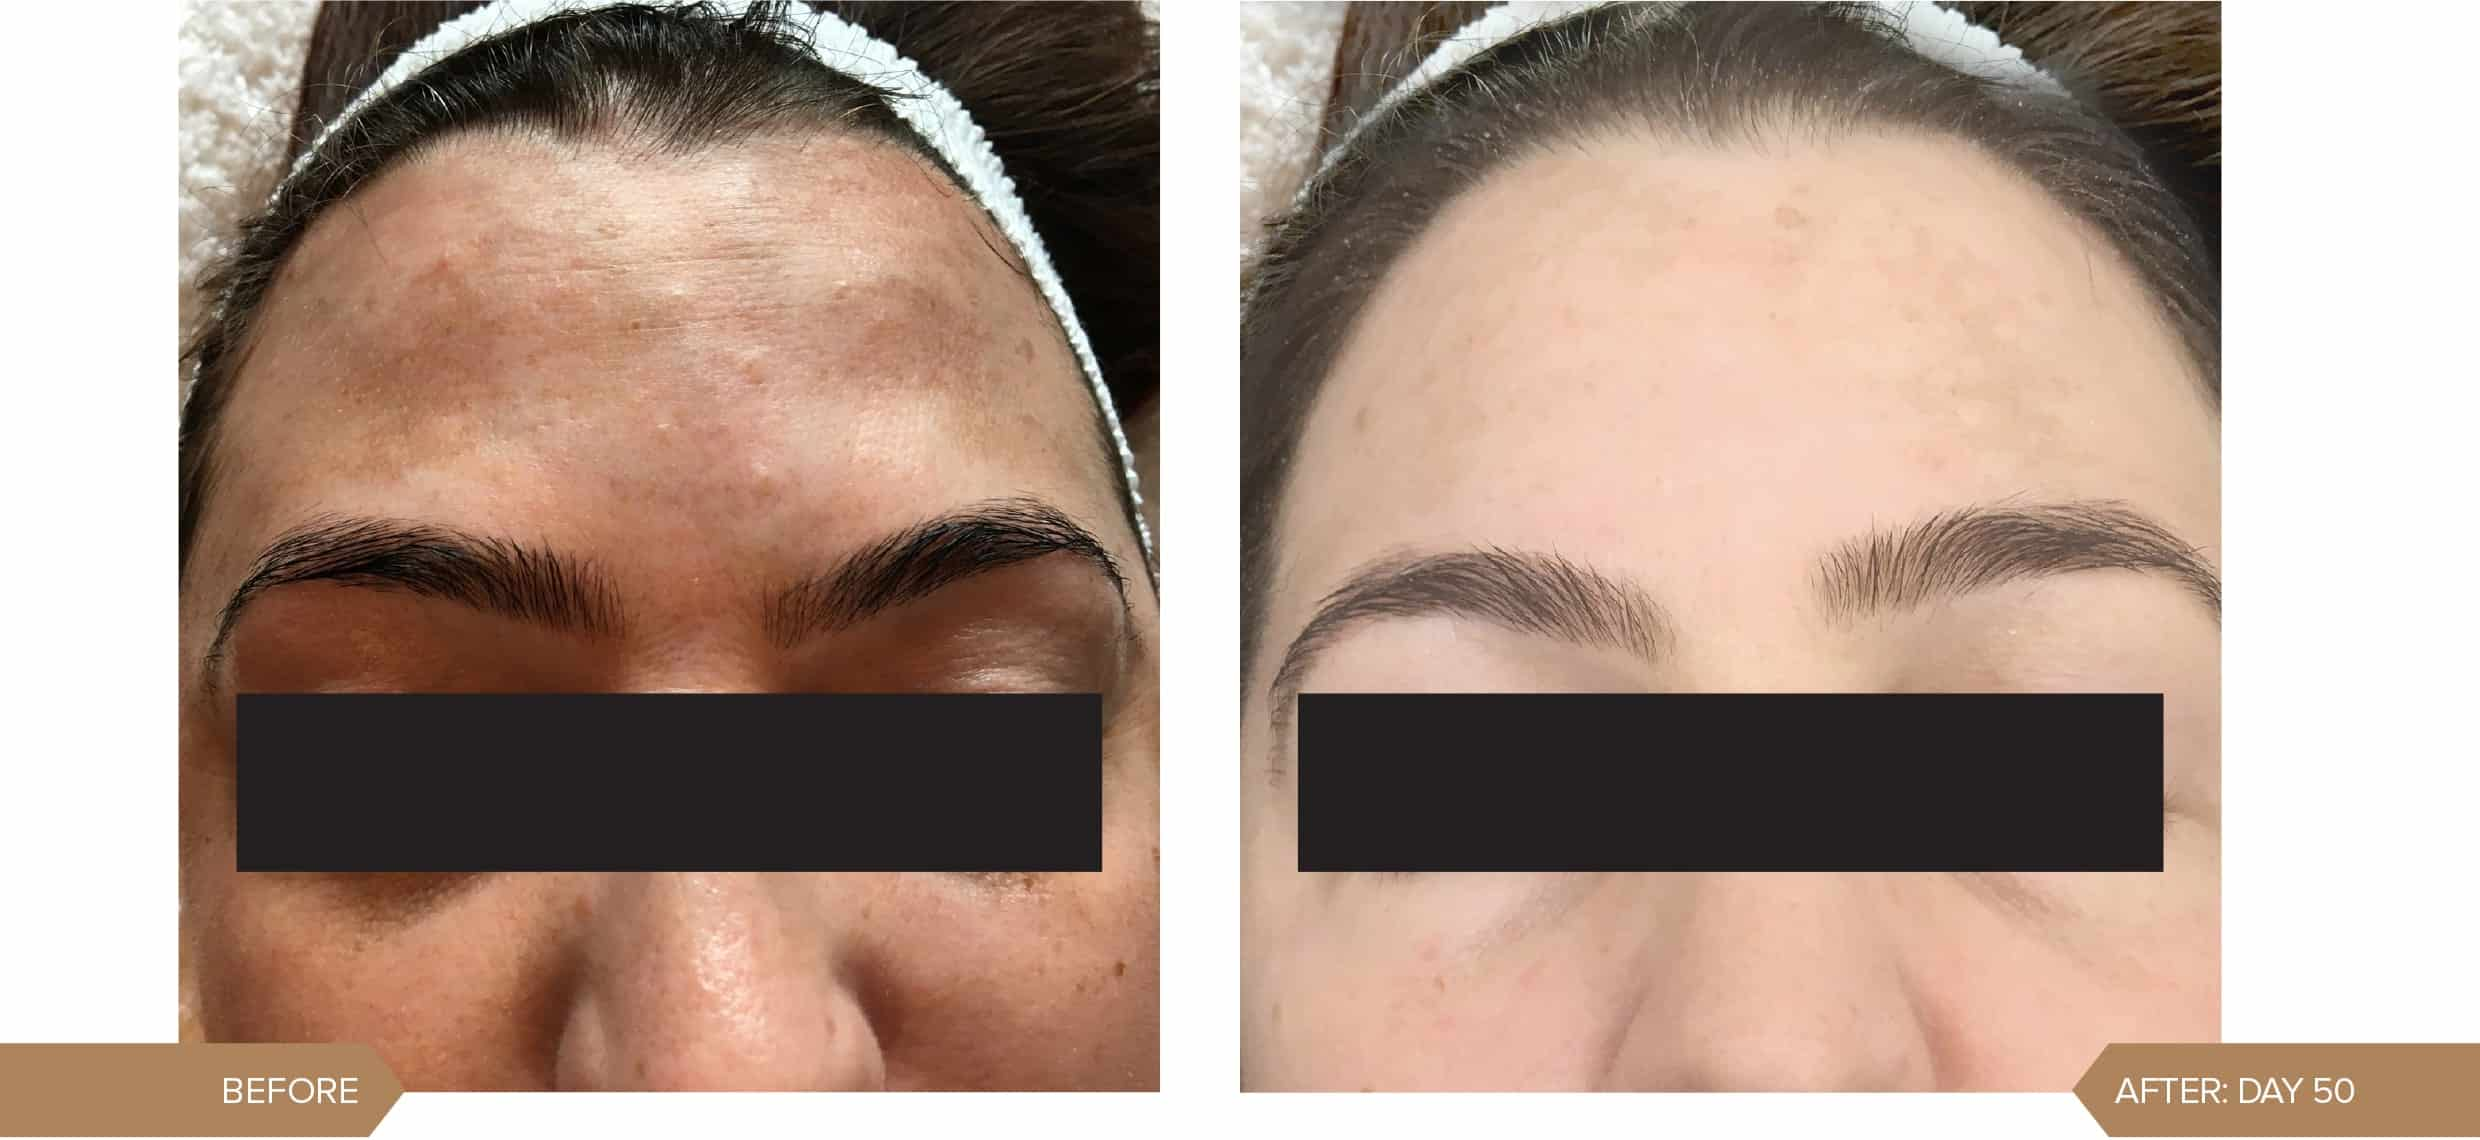 Ageing-&-Pigmentation-before-and-after-alumier-1